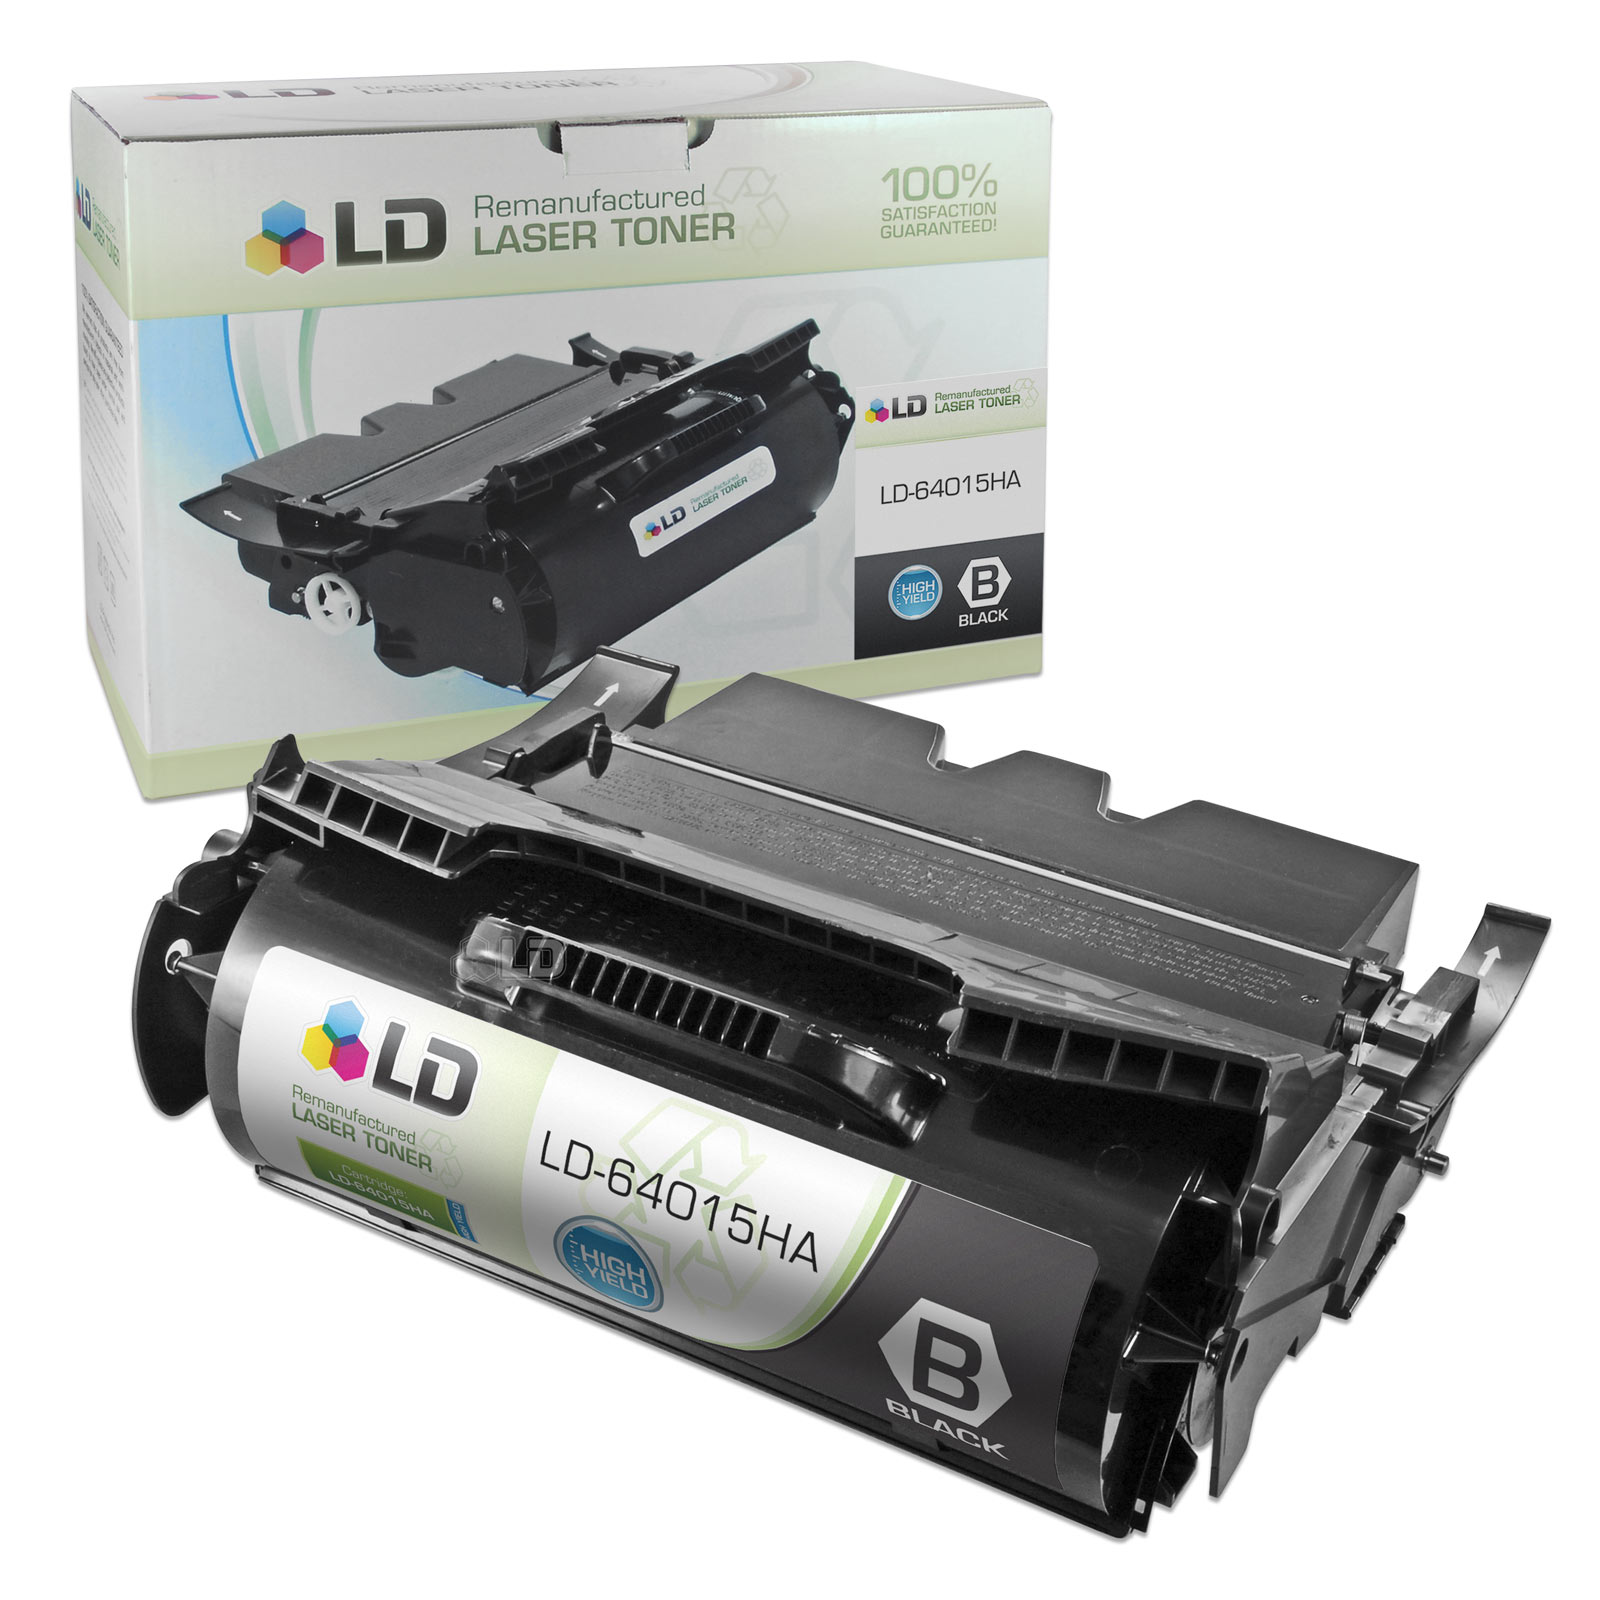 LD Remanufactured High Yield Black Laser Toner Cartridge for Lexmark 64015HA for the T644tn, T642dtn, T640, T642tn,